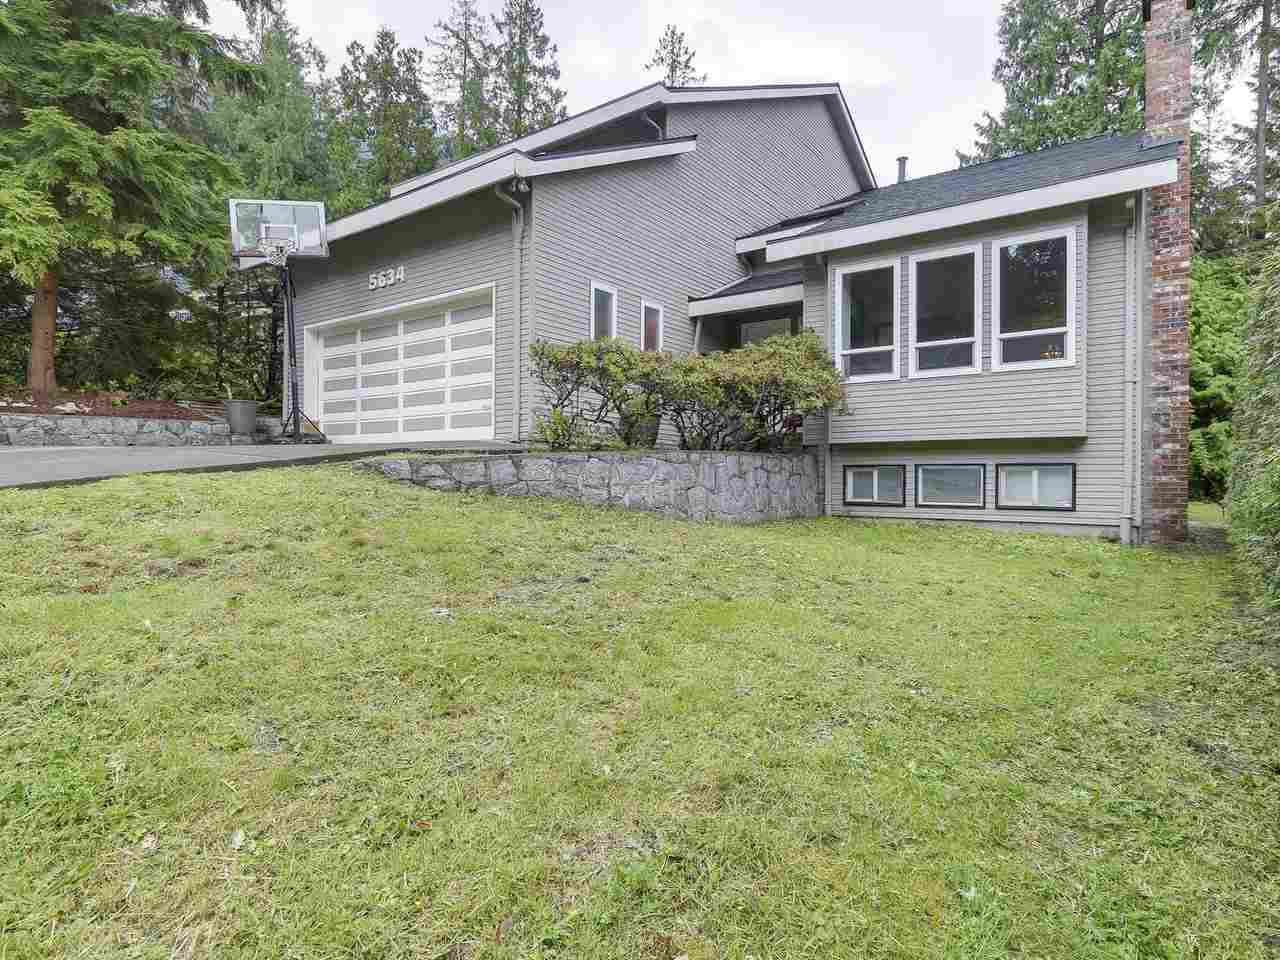 5634 HONEYSUCKLE PLACE, North Vancouver, BC V7R 4S4